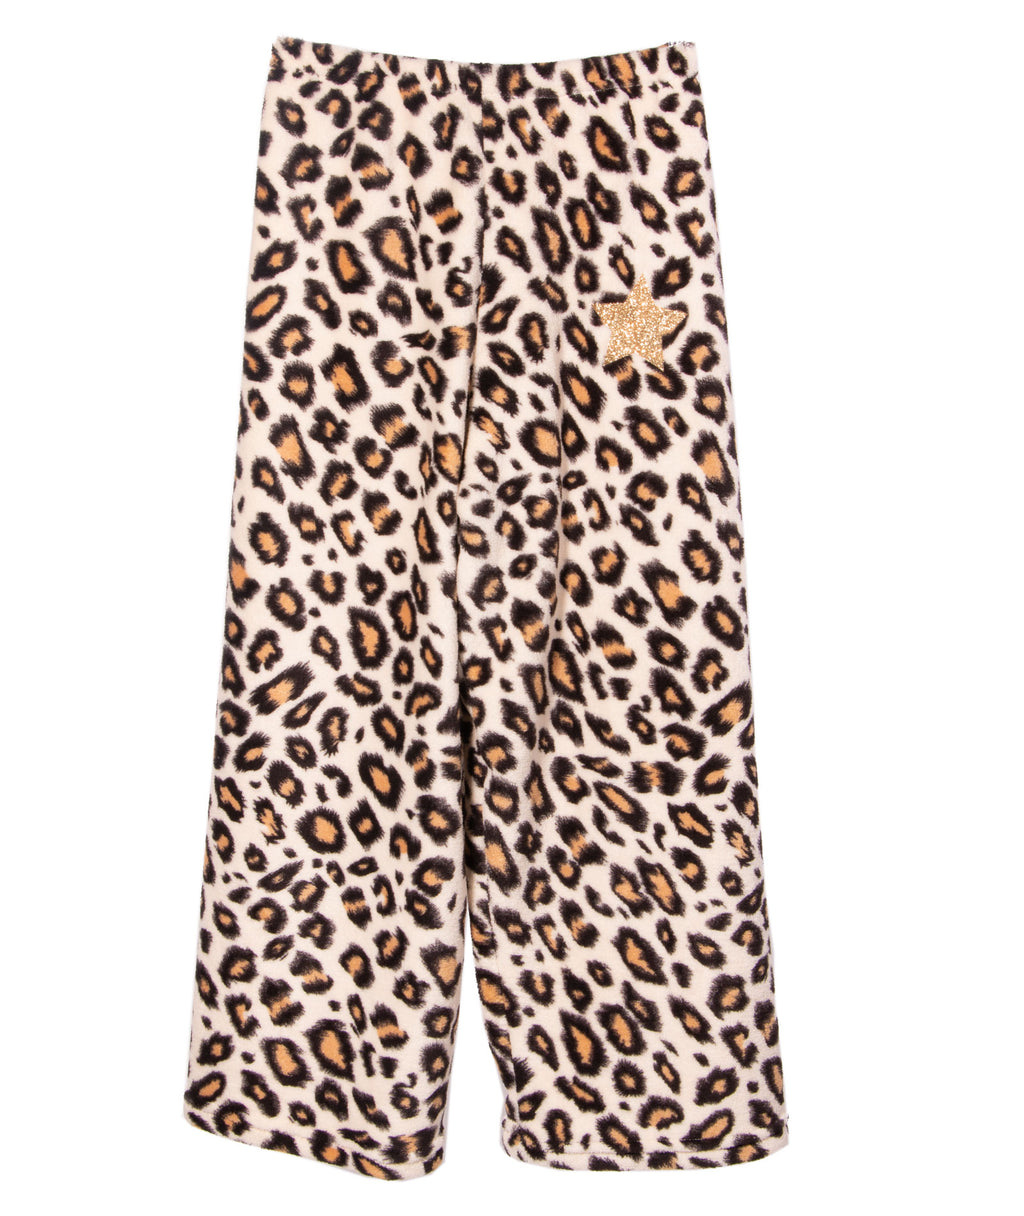 Made with Love and Kisses Leopard PJ Pants